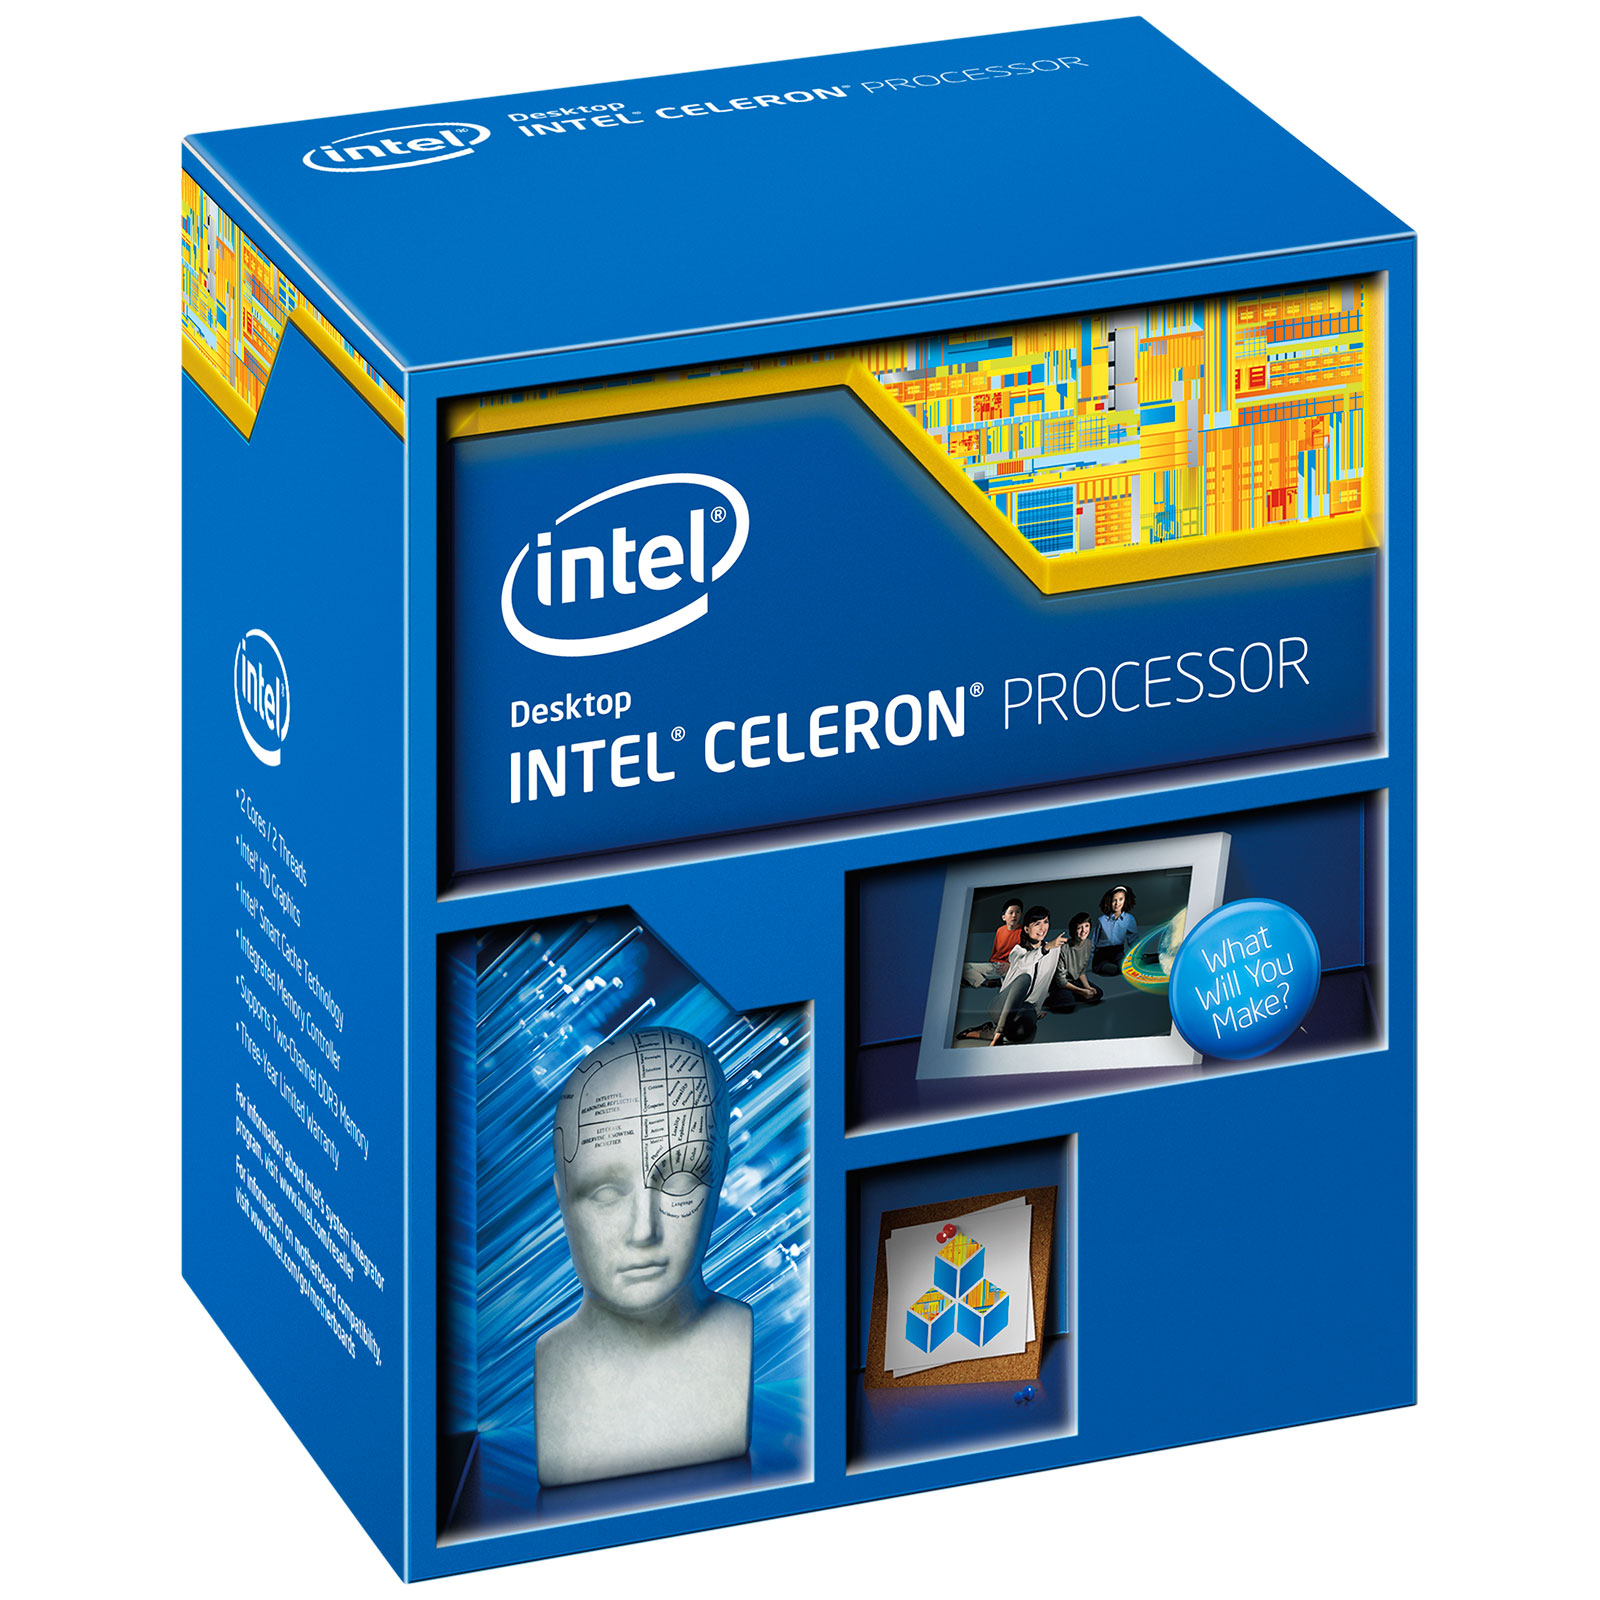 Processeur Intel Celeron G1850 (2.9 GHz) Processeur Dual Core Socket 1150 Cache L3 2 Mo Intel HD Graphics 0.022 micron (version boîte - garantie Intel 3 ans)